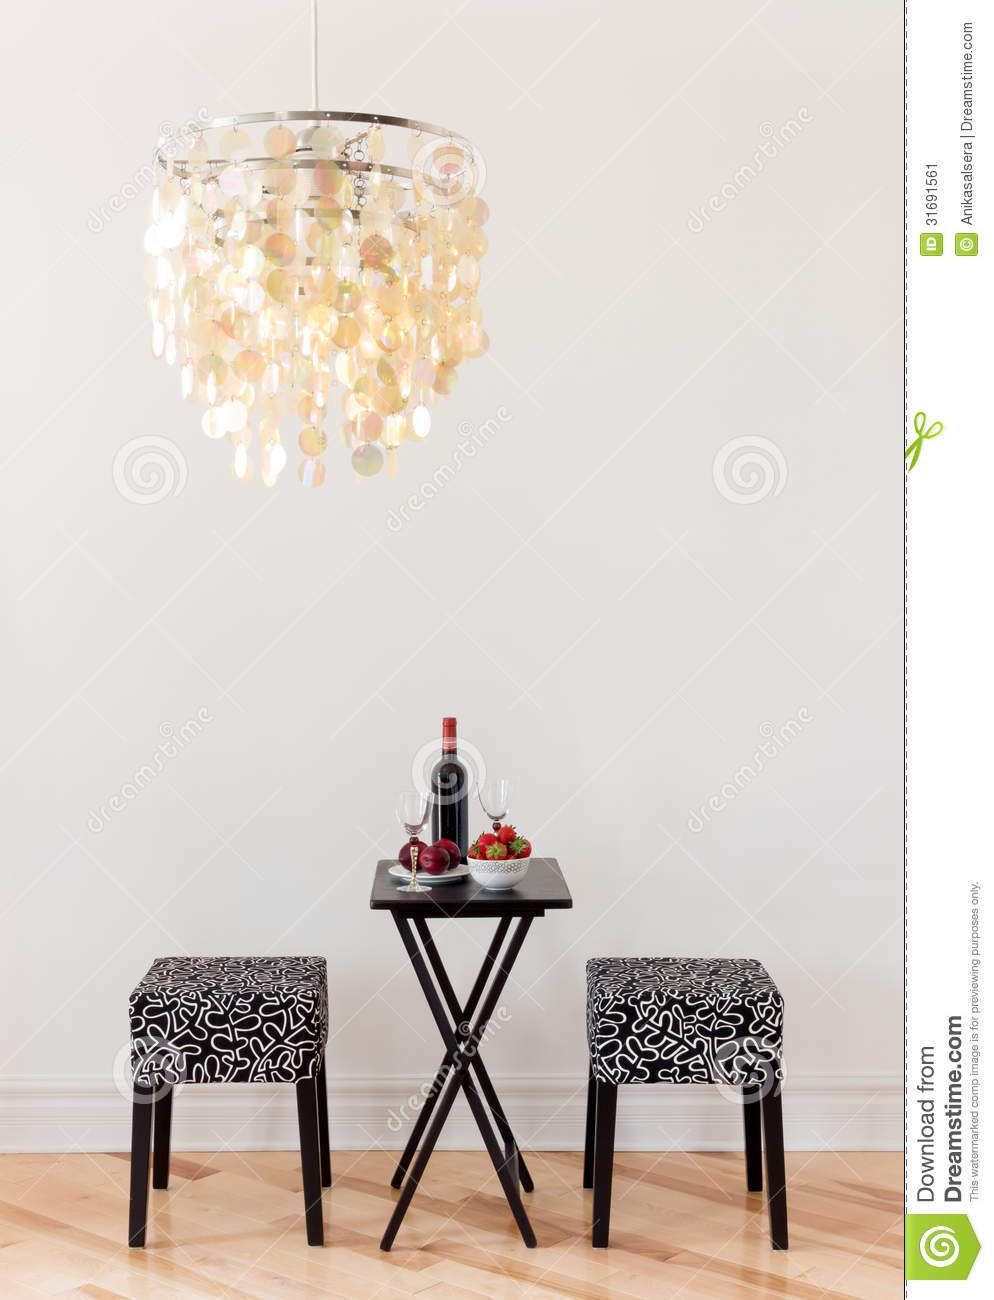 Table for two with bottle of red wine